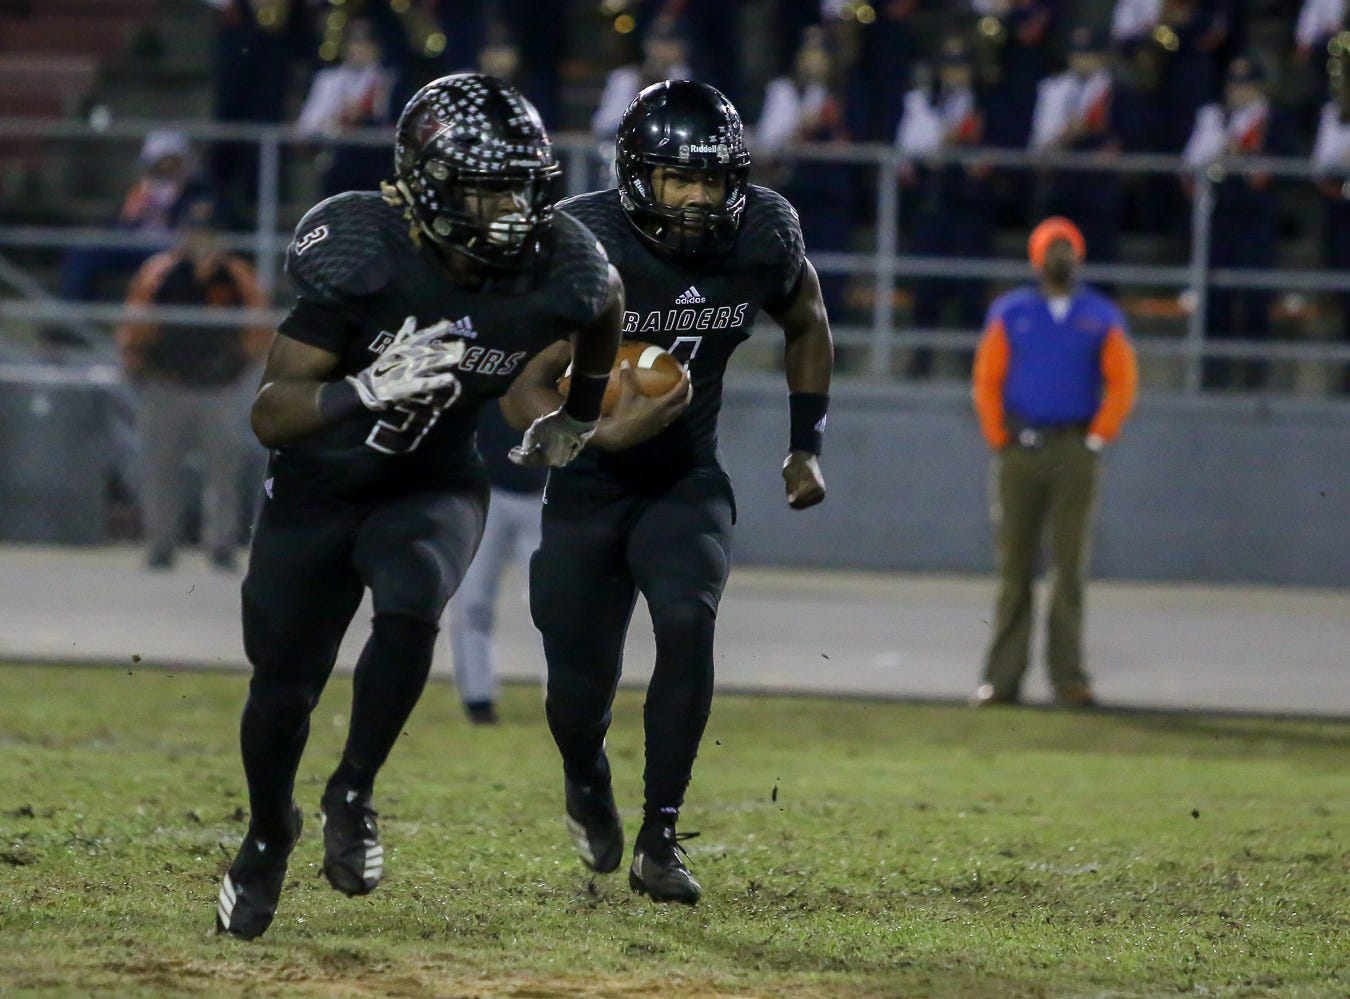 Navarre quarterback Marlon Courtney III (1) keeps the ball and follows his lead blocker, Christopher Williams (3), against Escambia in the Region 1-6A Semifinal game at Navarre High School on Friday, November 16, 2018.